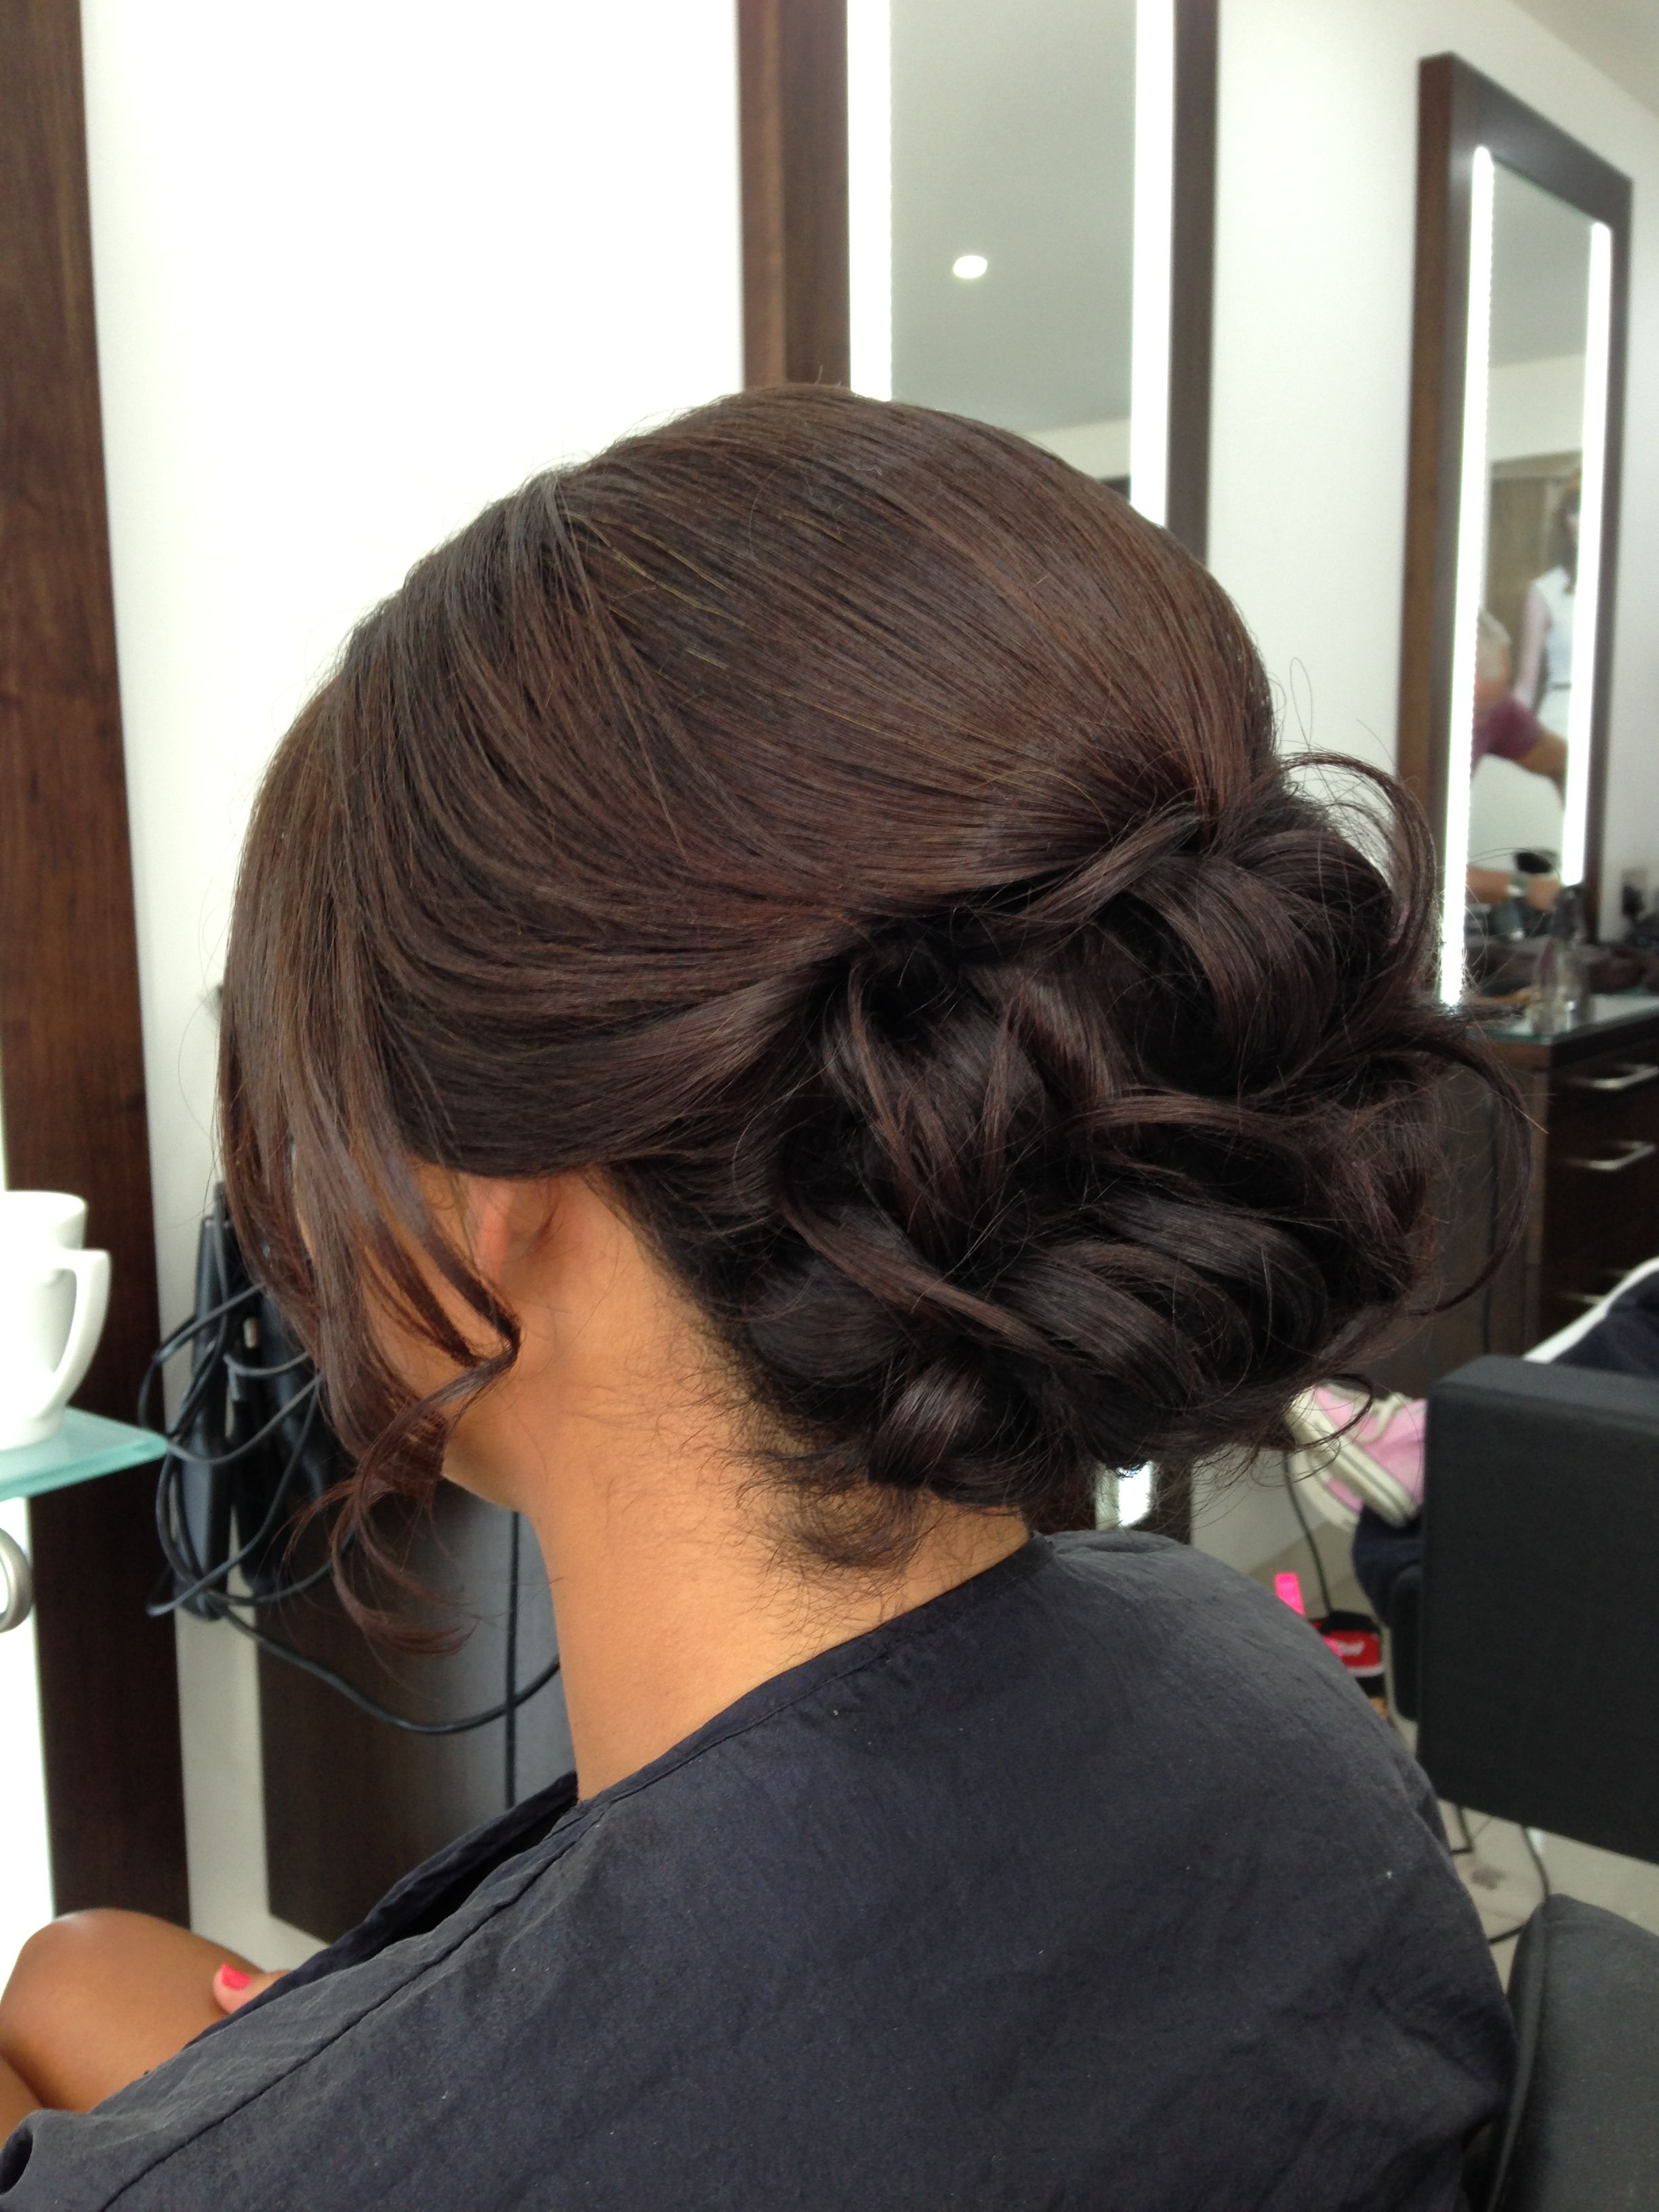 Brunette Hair Up Wedding Guest X Summer Hairstyles Dry Frizzy Hair Wedding Hairstyles